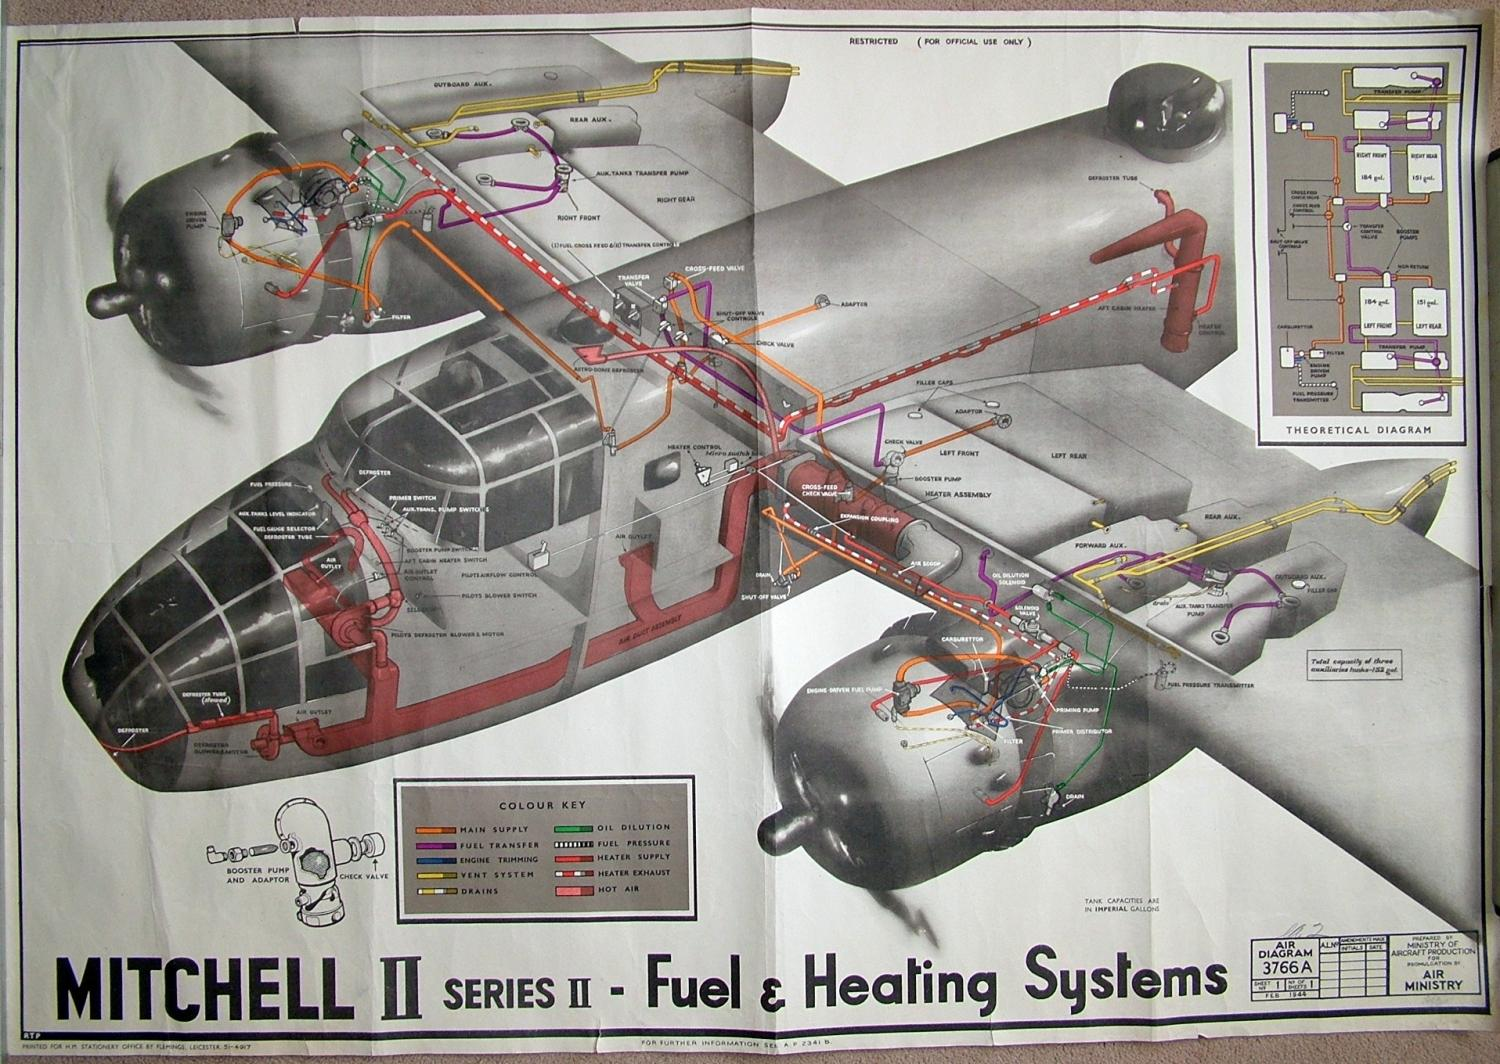 Air Diagram - Mitchell II Fuel/Heating System